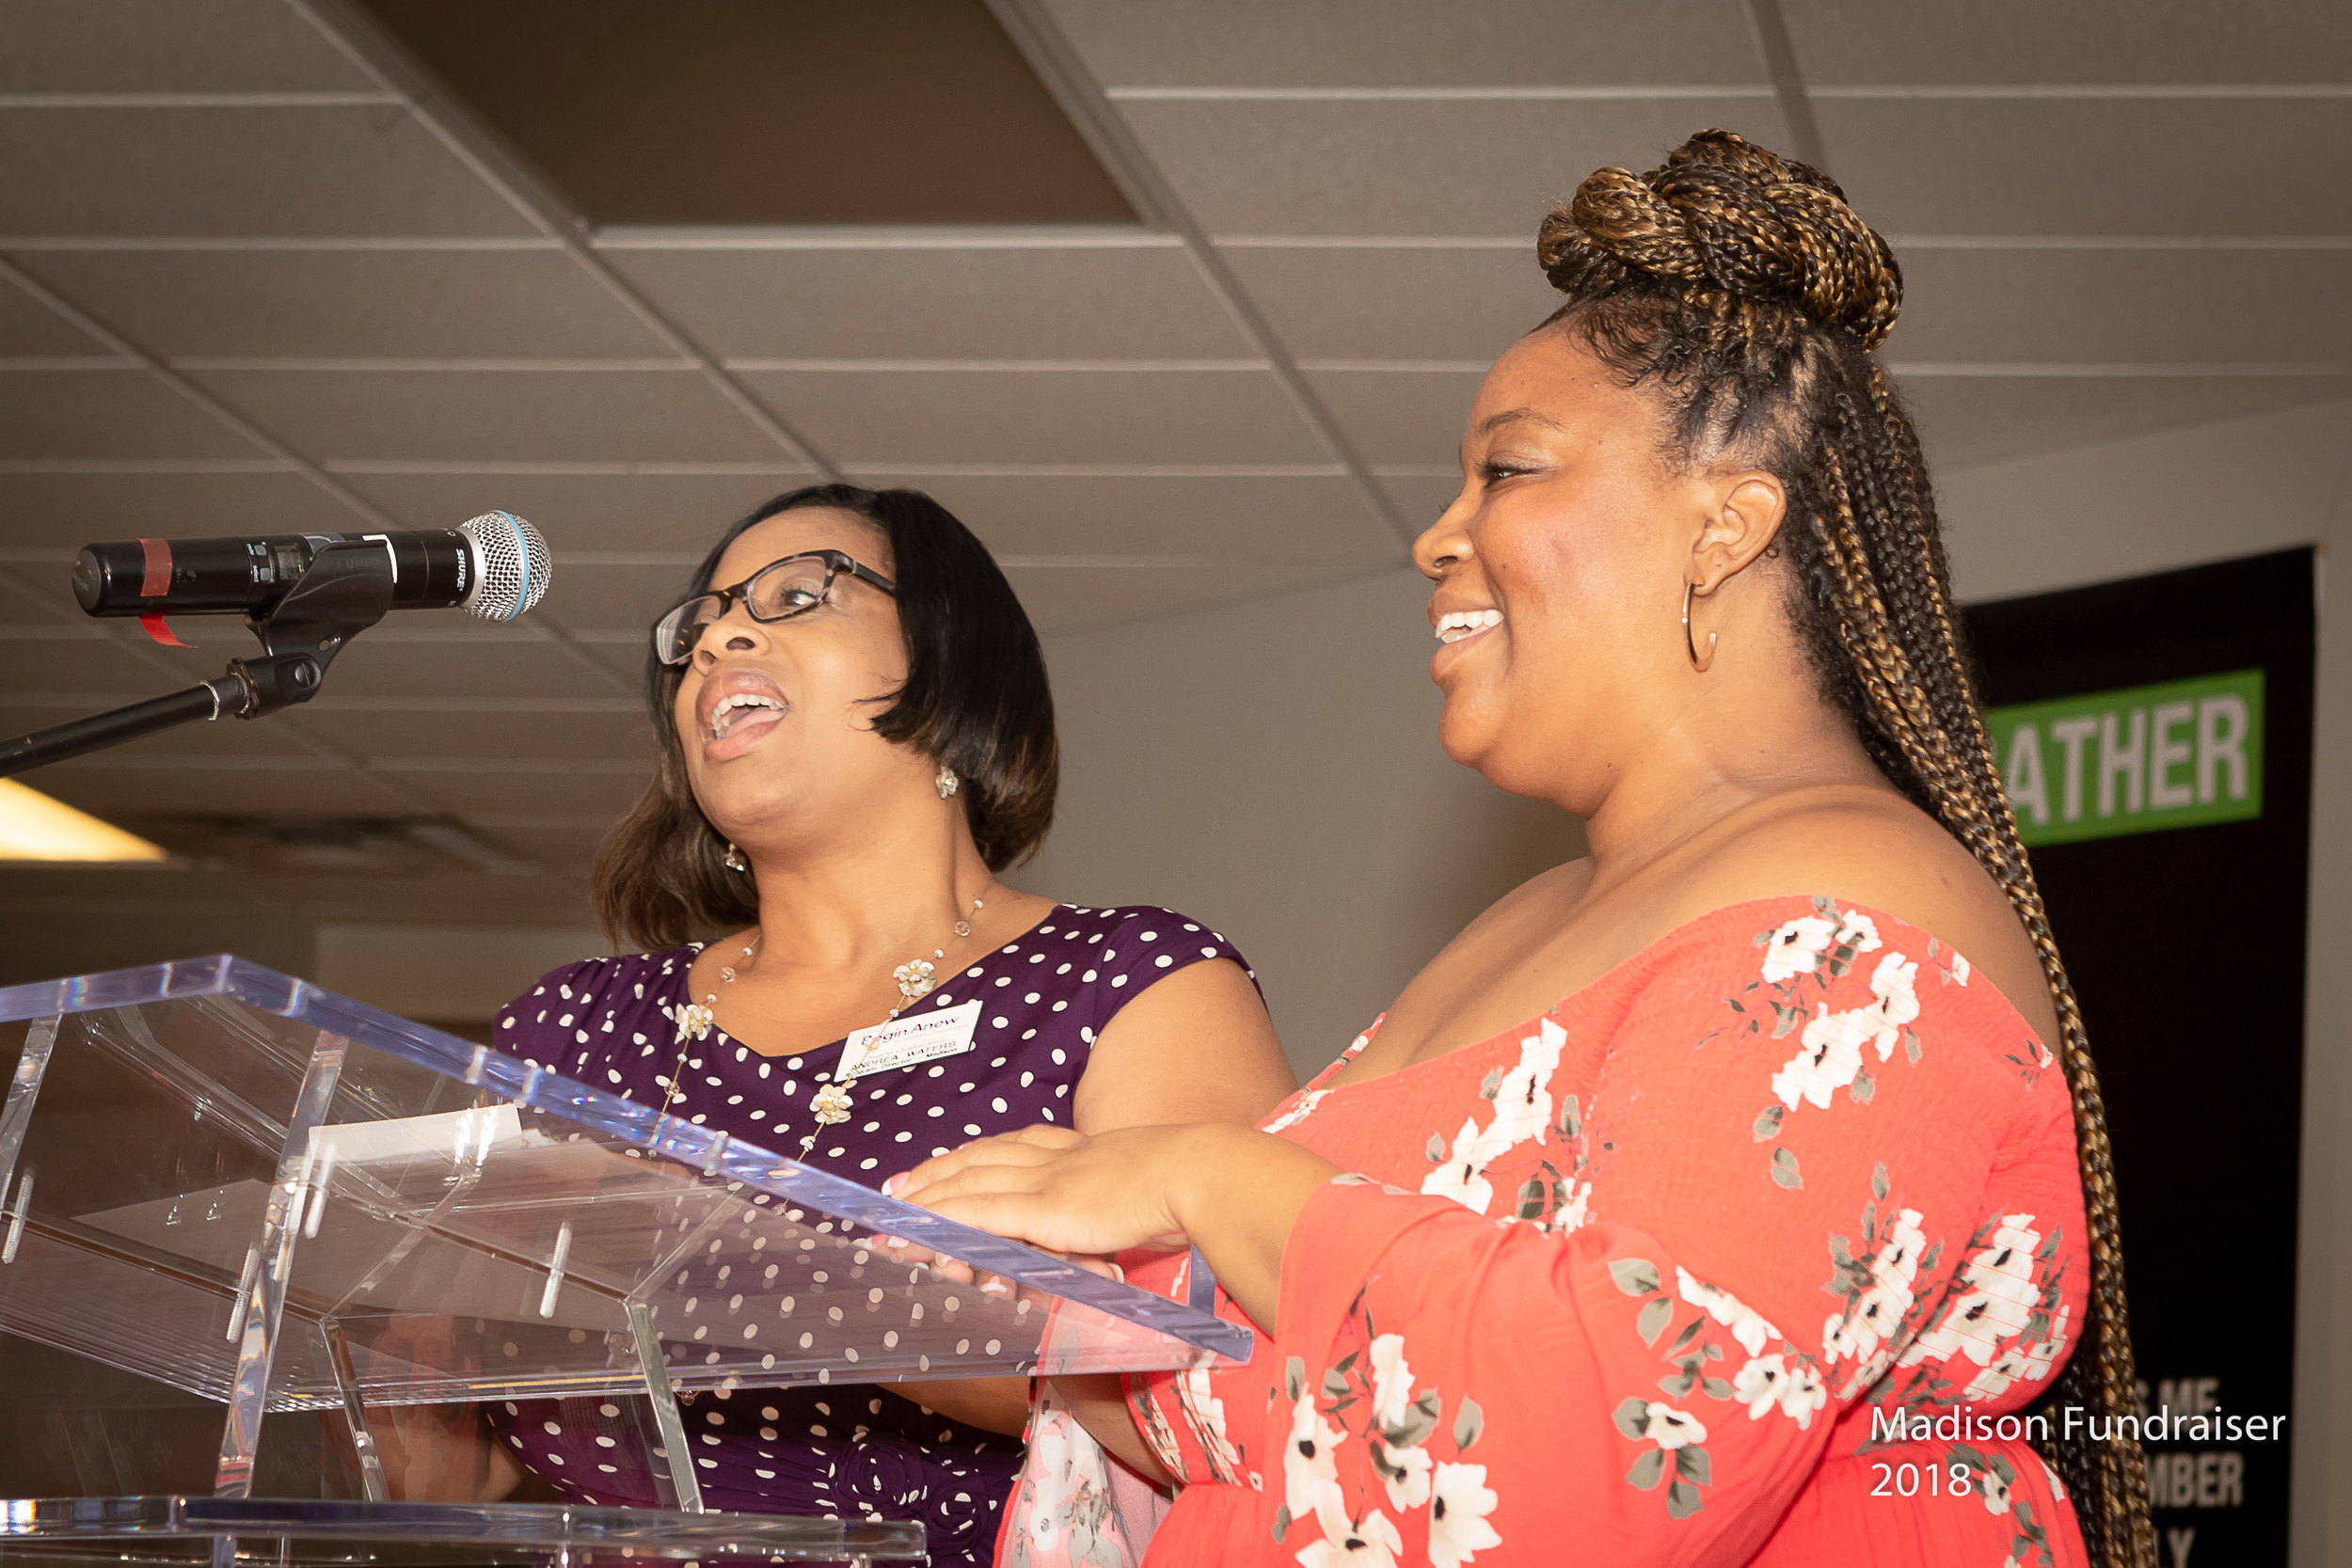 Doretha Newsome being interviewed by Madison Women's Director, Andrea Waters